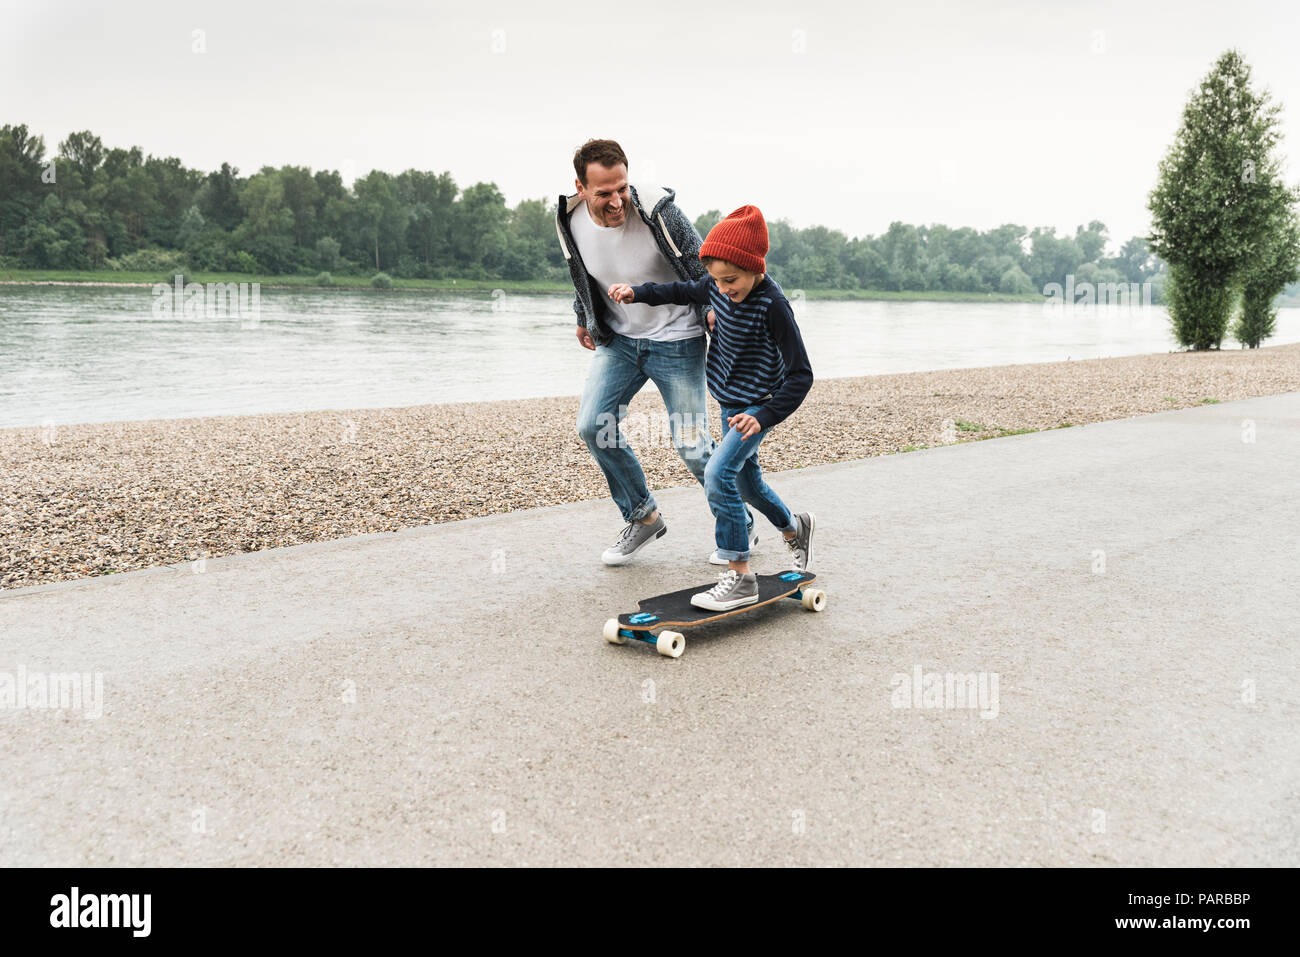 Happy father running next to son on skateboard at the riverside - Stock Image